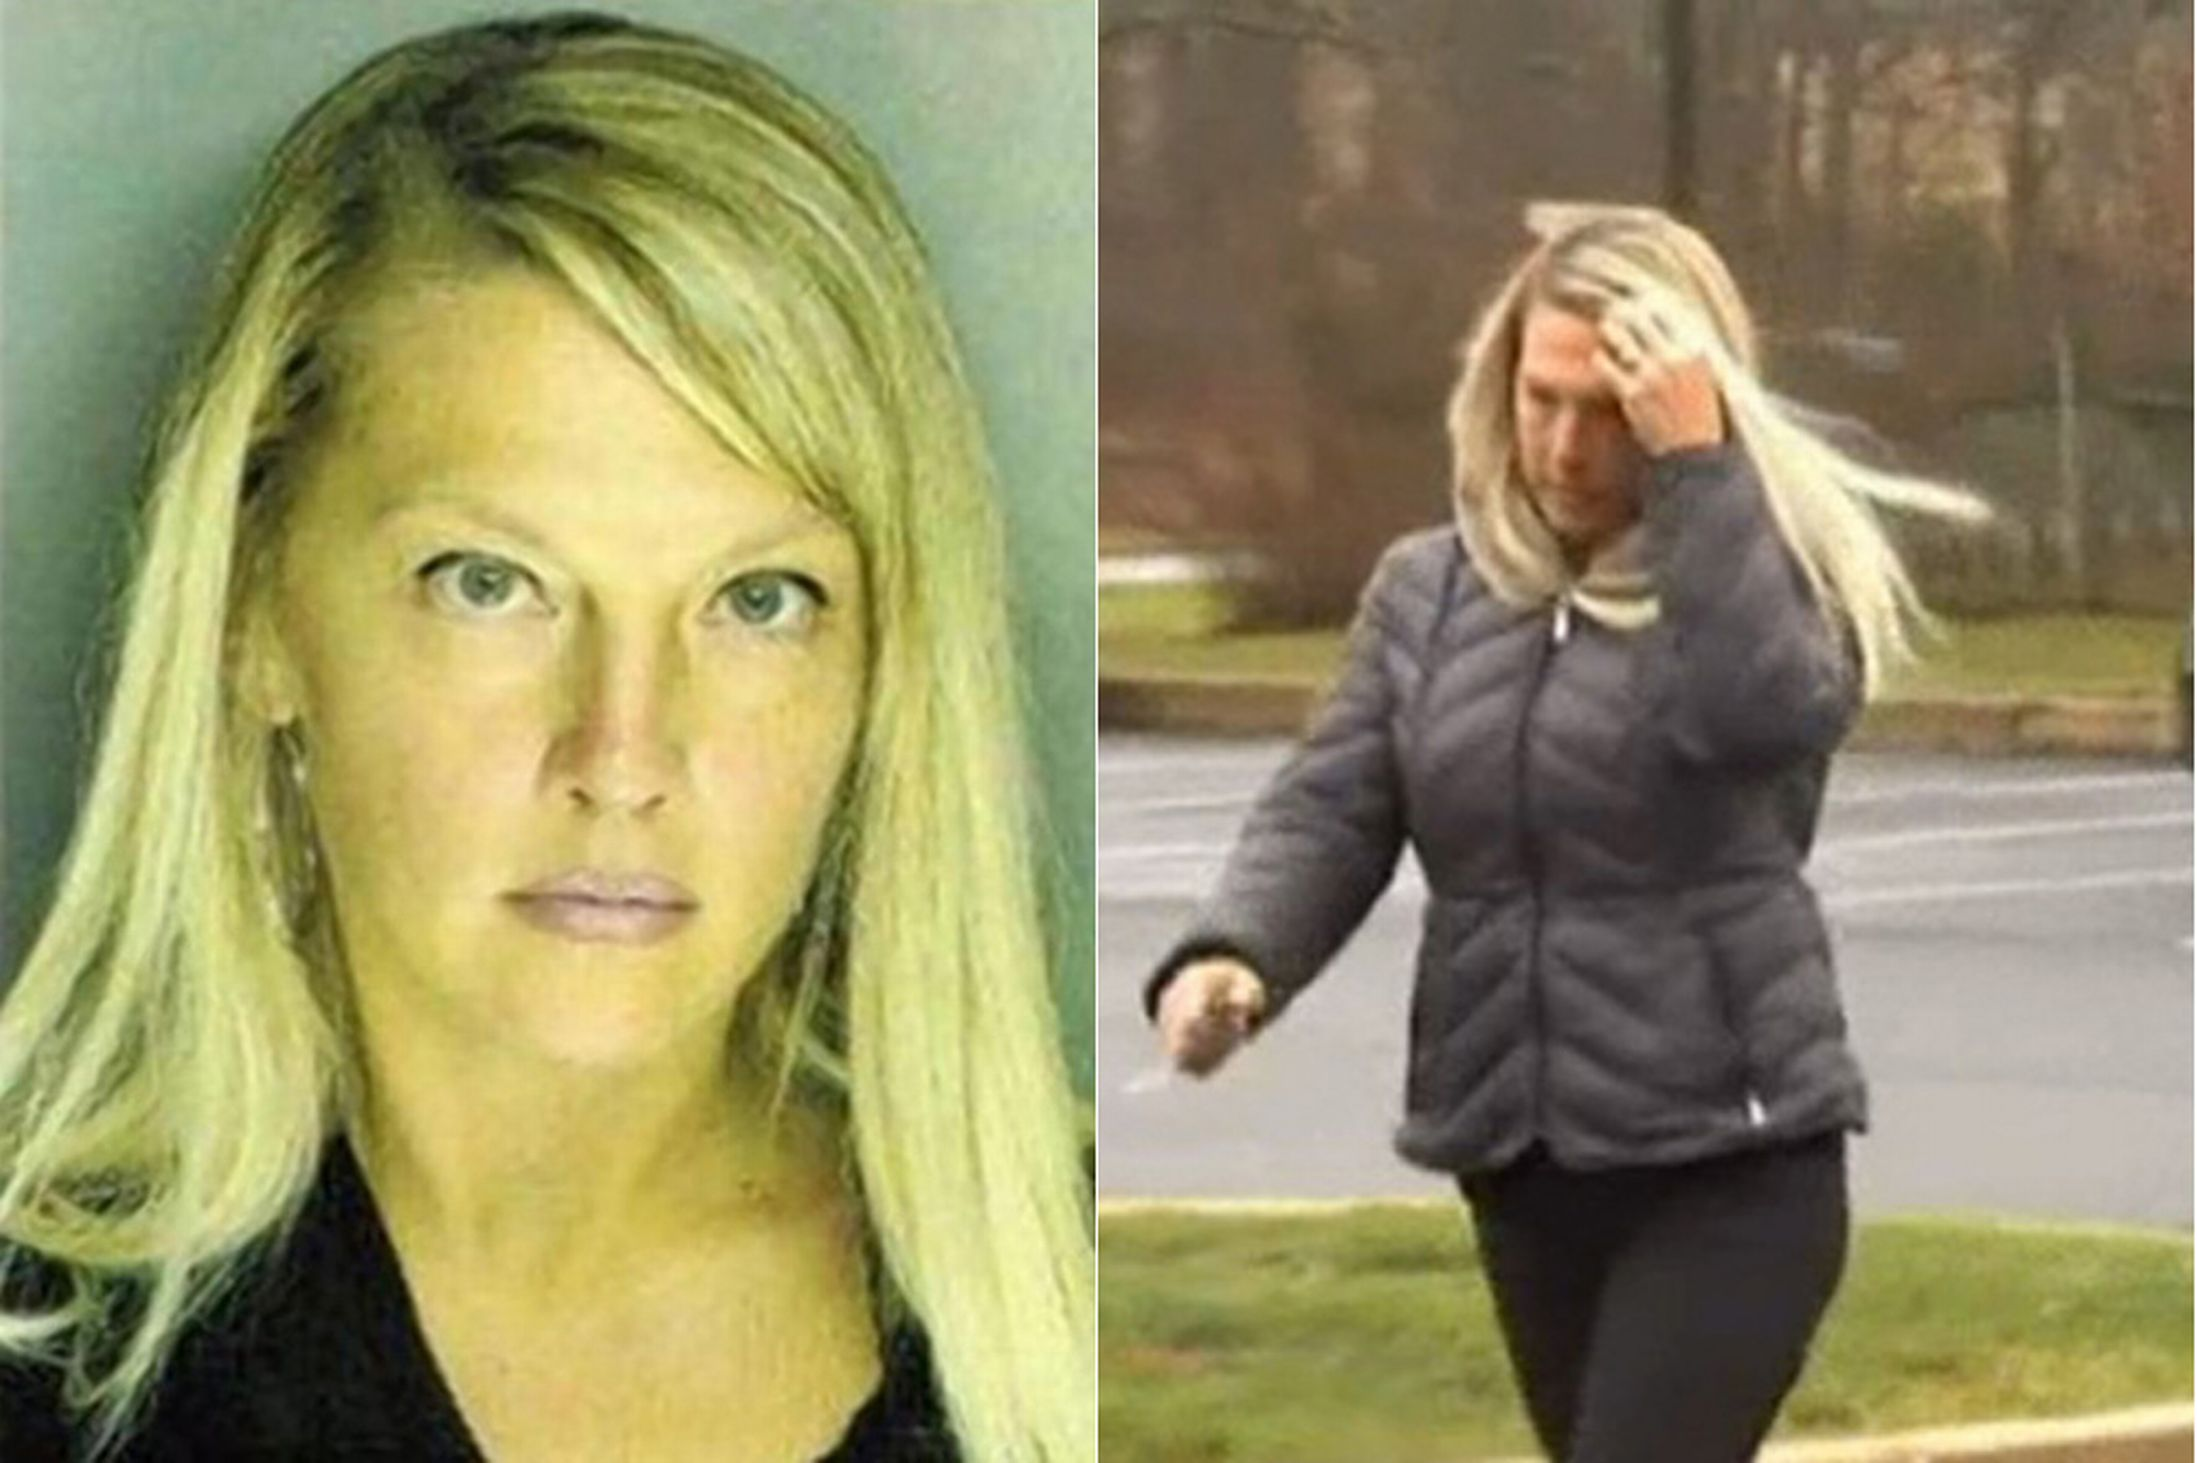 Mom caught having sex with soccer player